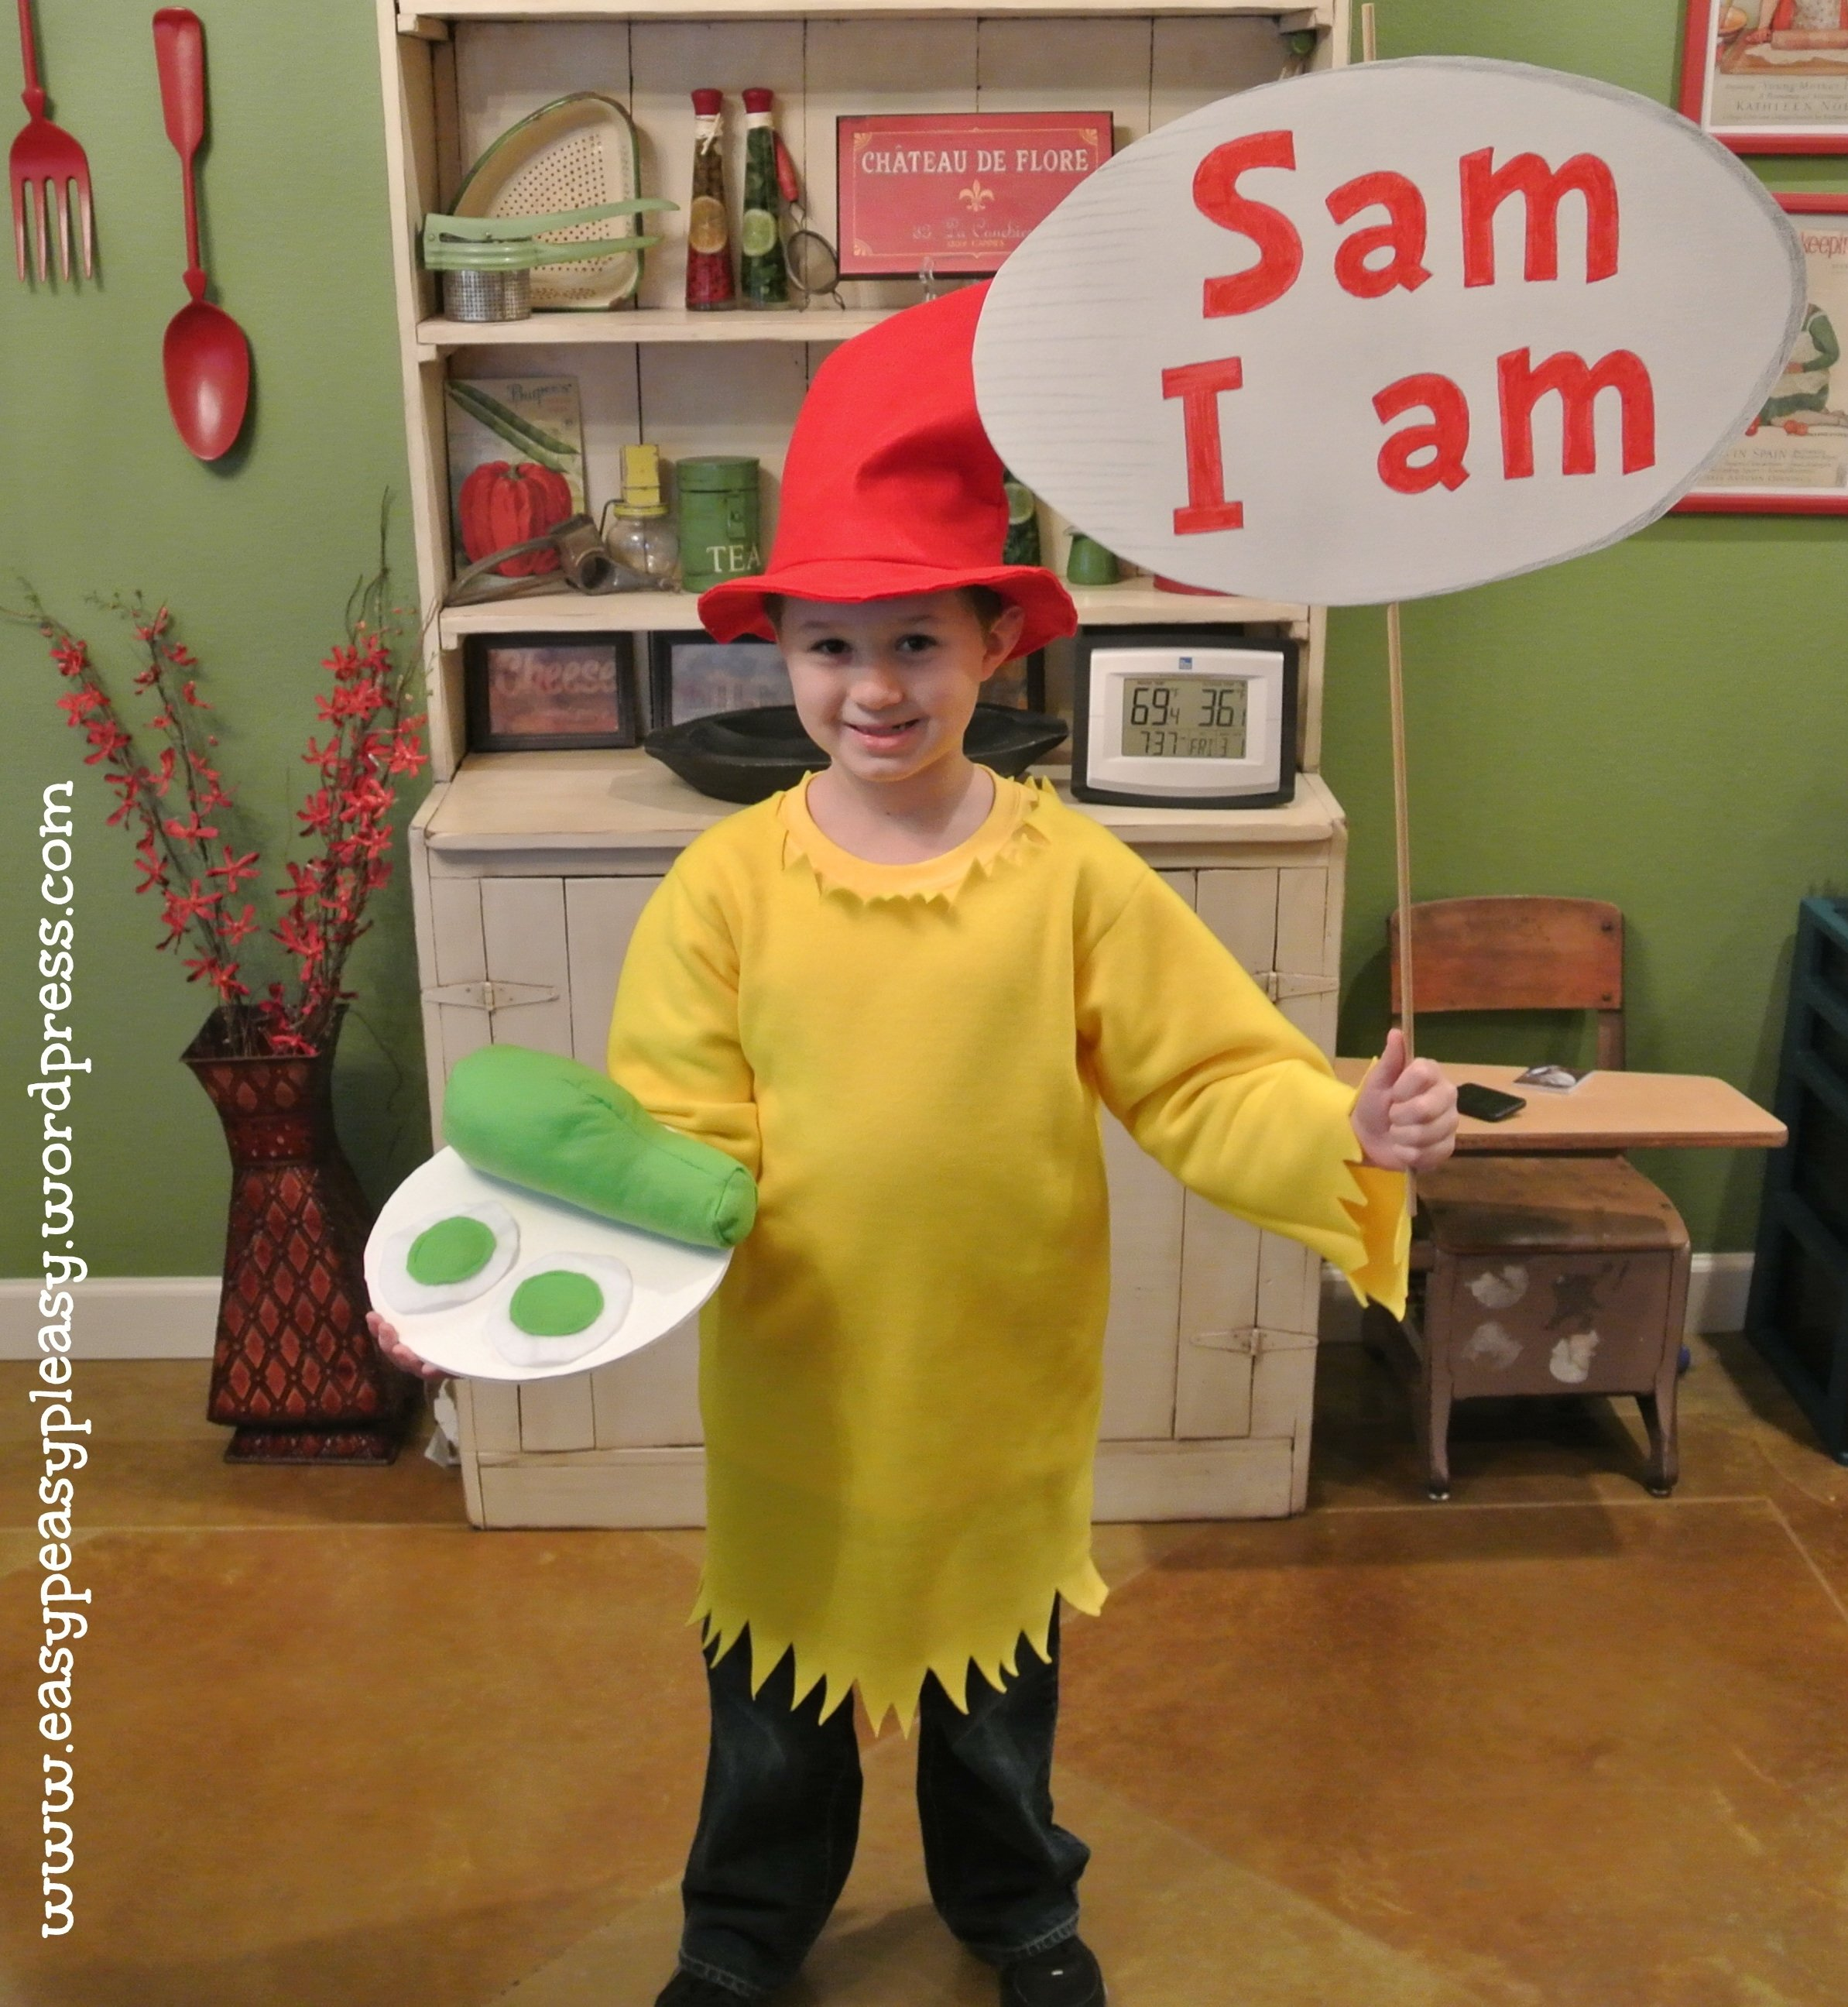 10 Stylish Dr Seuss Costume Ideas Homemade all things dr seuss sam i am costume easy peasy pleasy 2 2020